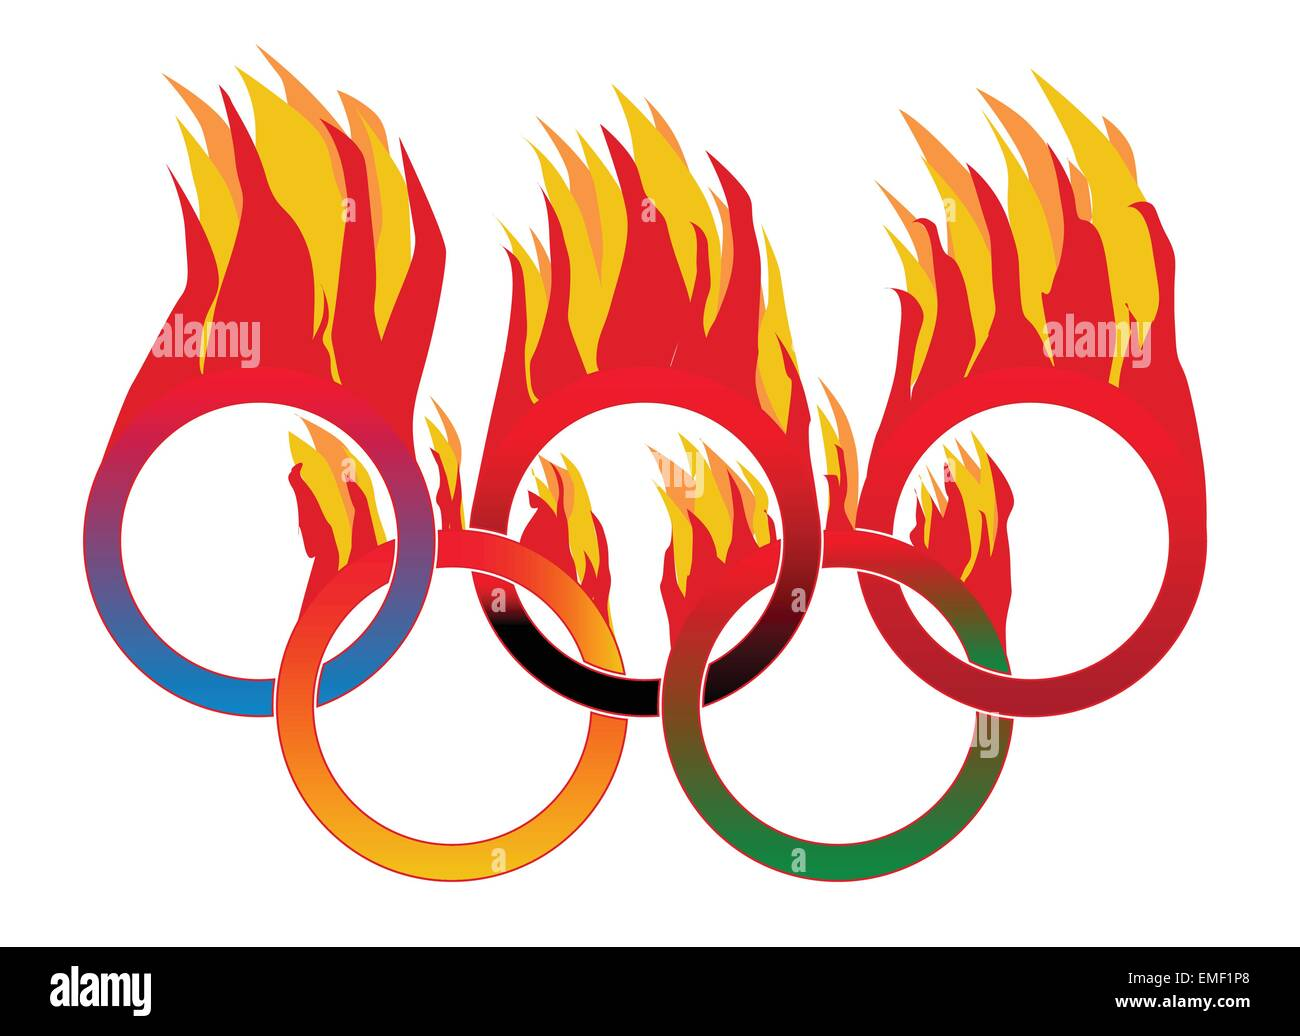 Flame Olympic Rings - Stock Vector